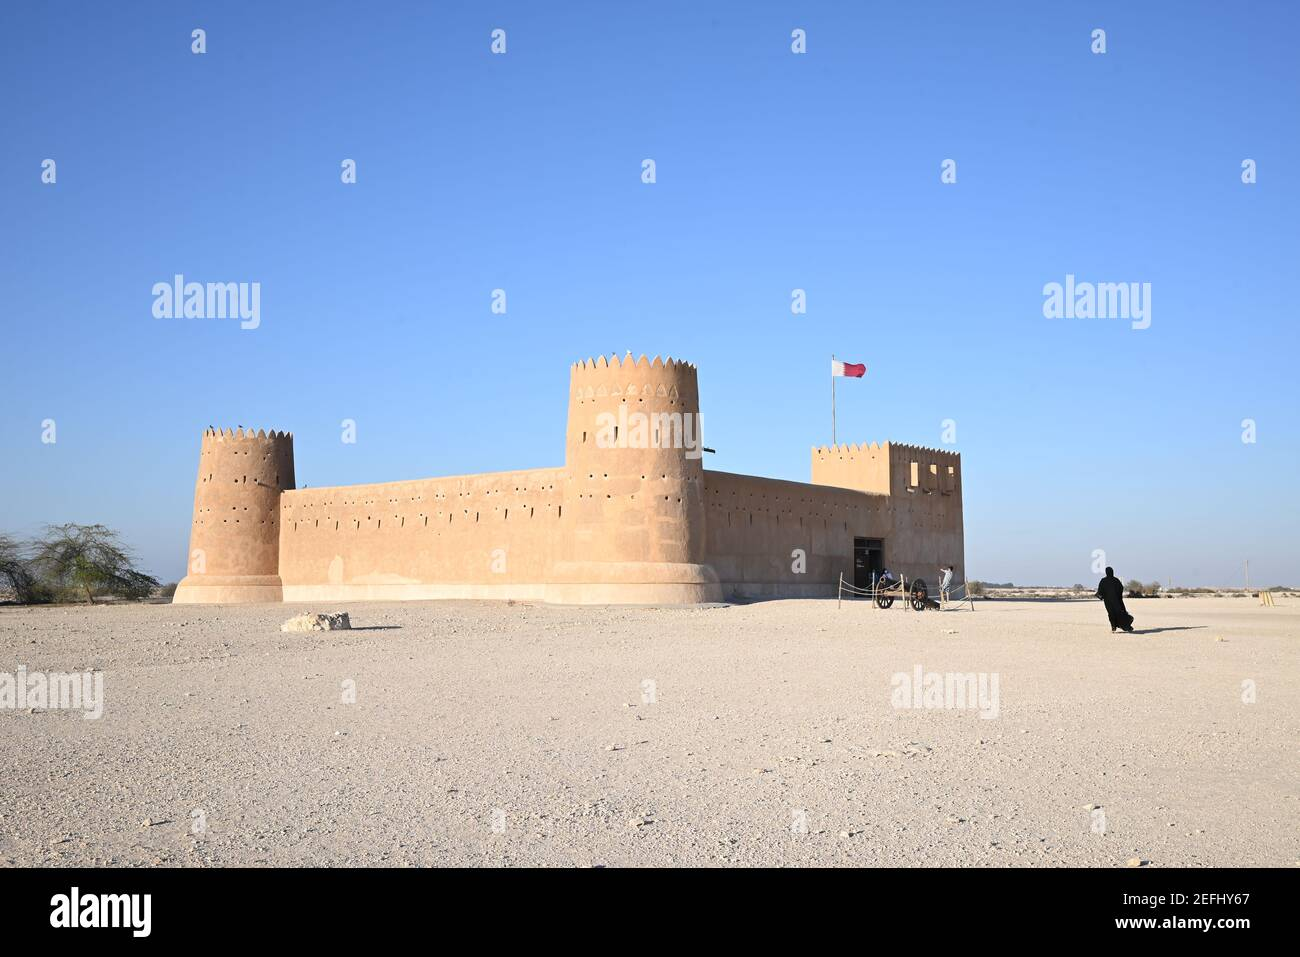 View of the Al Zubara Fort, a historic Qatari military fortress part of the Al Zubarah archeological site, a UNESCO World Heritage site in Qatar. Stock Photo